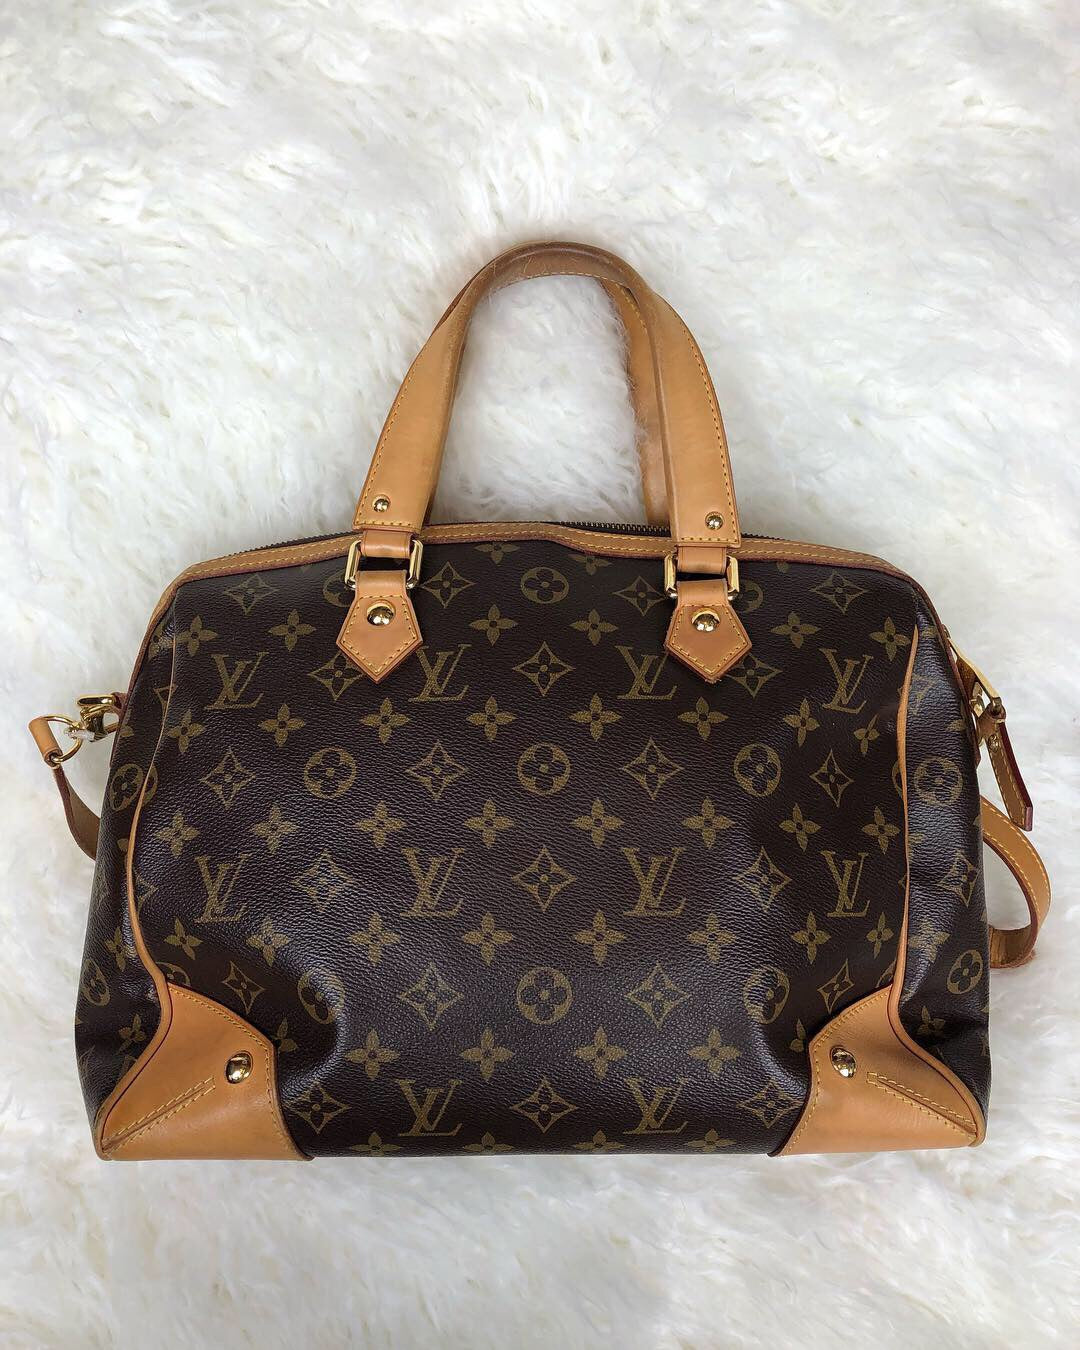 LOUIS VUITTON Retiro PM Monogram Satchel Bag